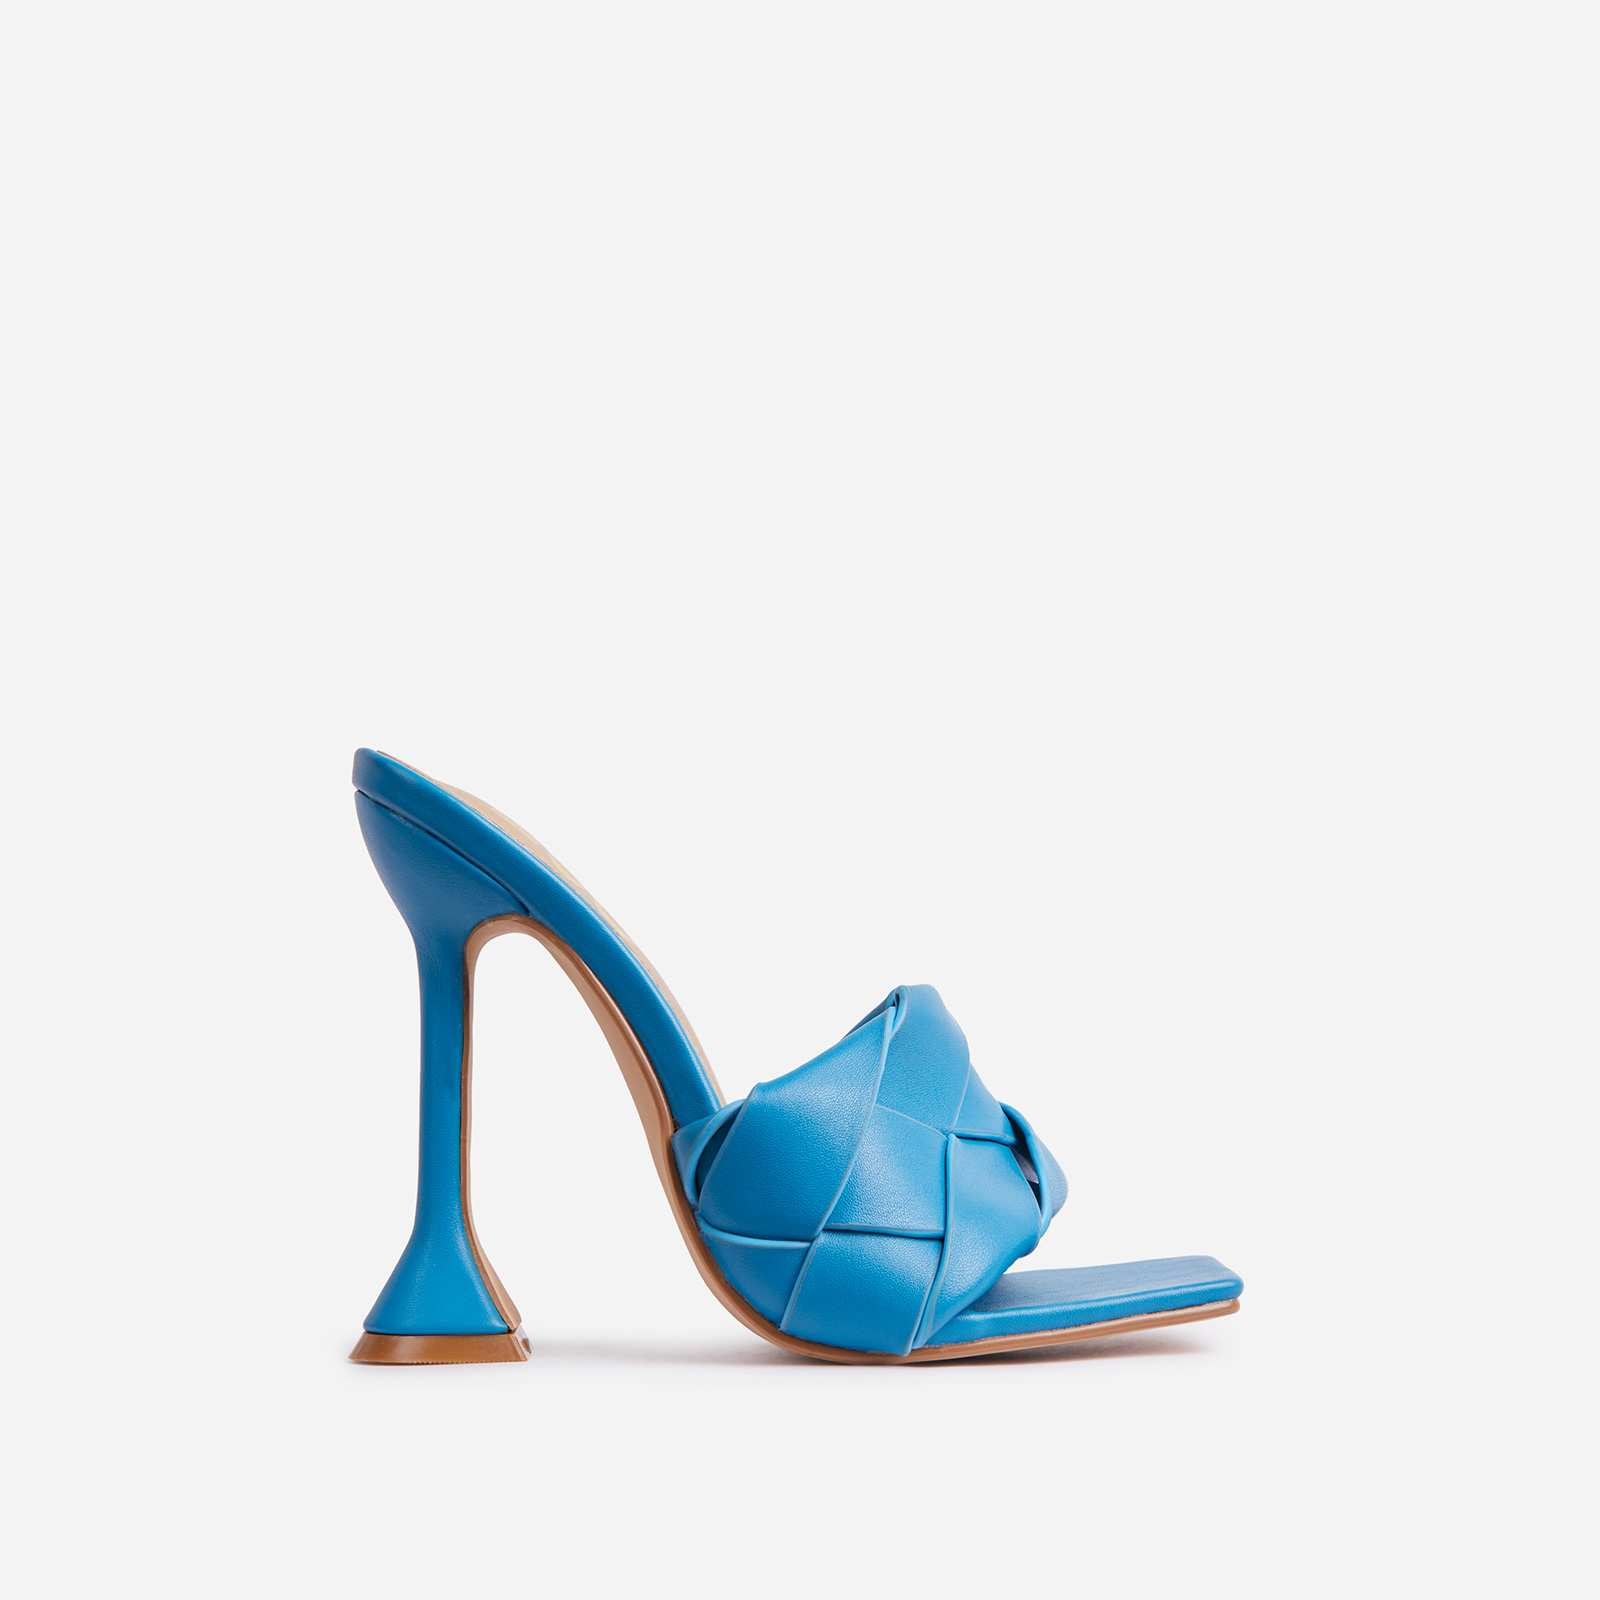 Handled Woven Square Peep Toe Sculptured Heel Mule In Blue Faux Leather